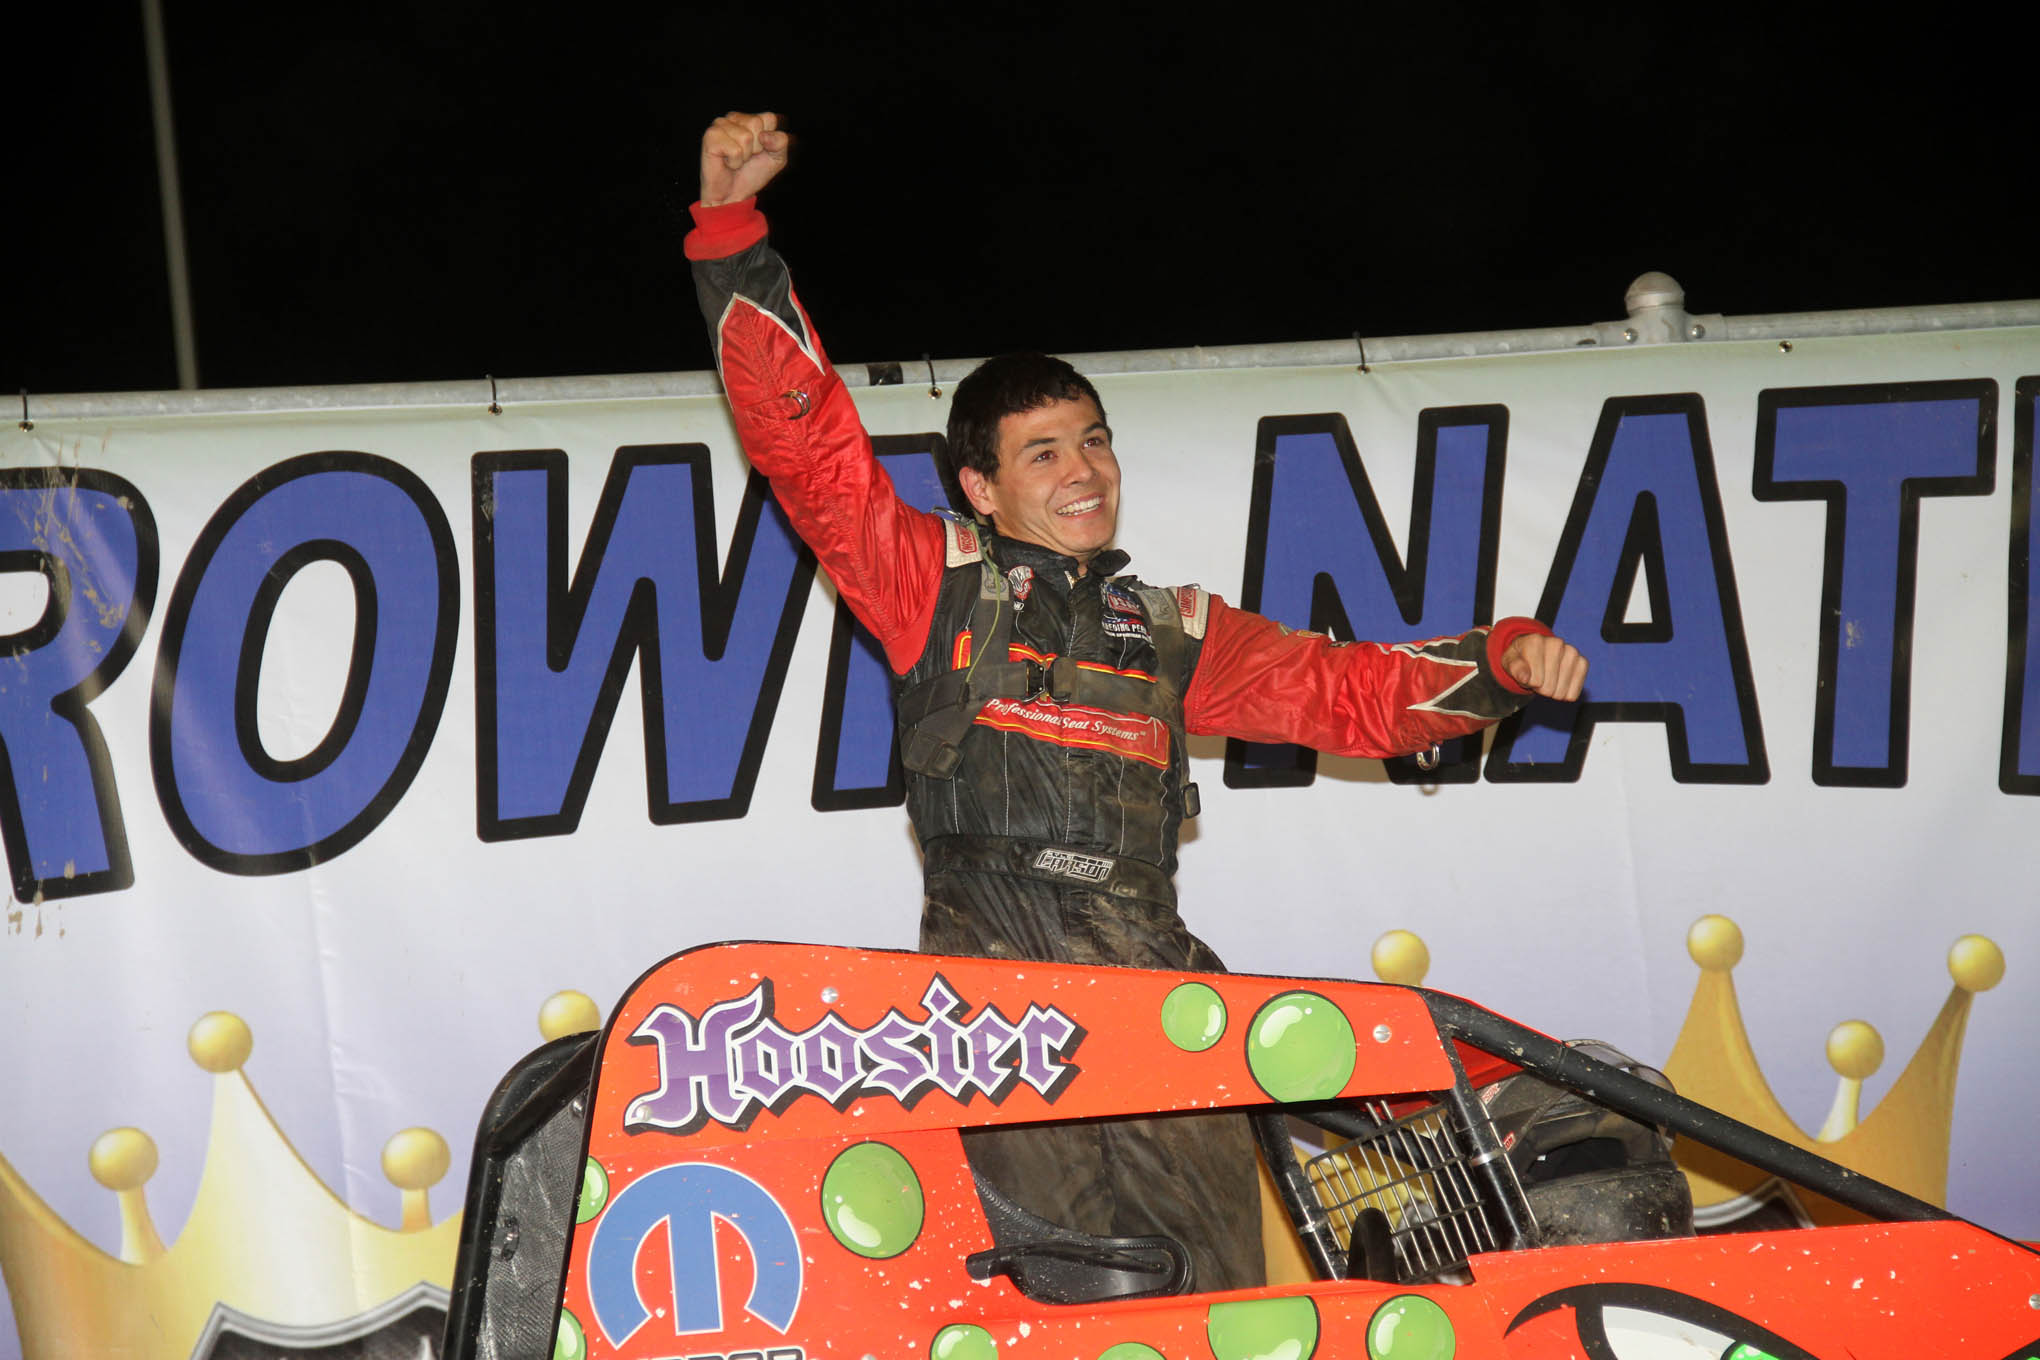 Kyle Larson during a victory celebration at the Eldora Four-Crown Nationals.